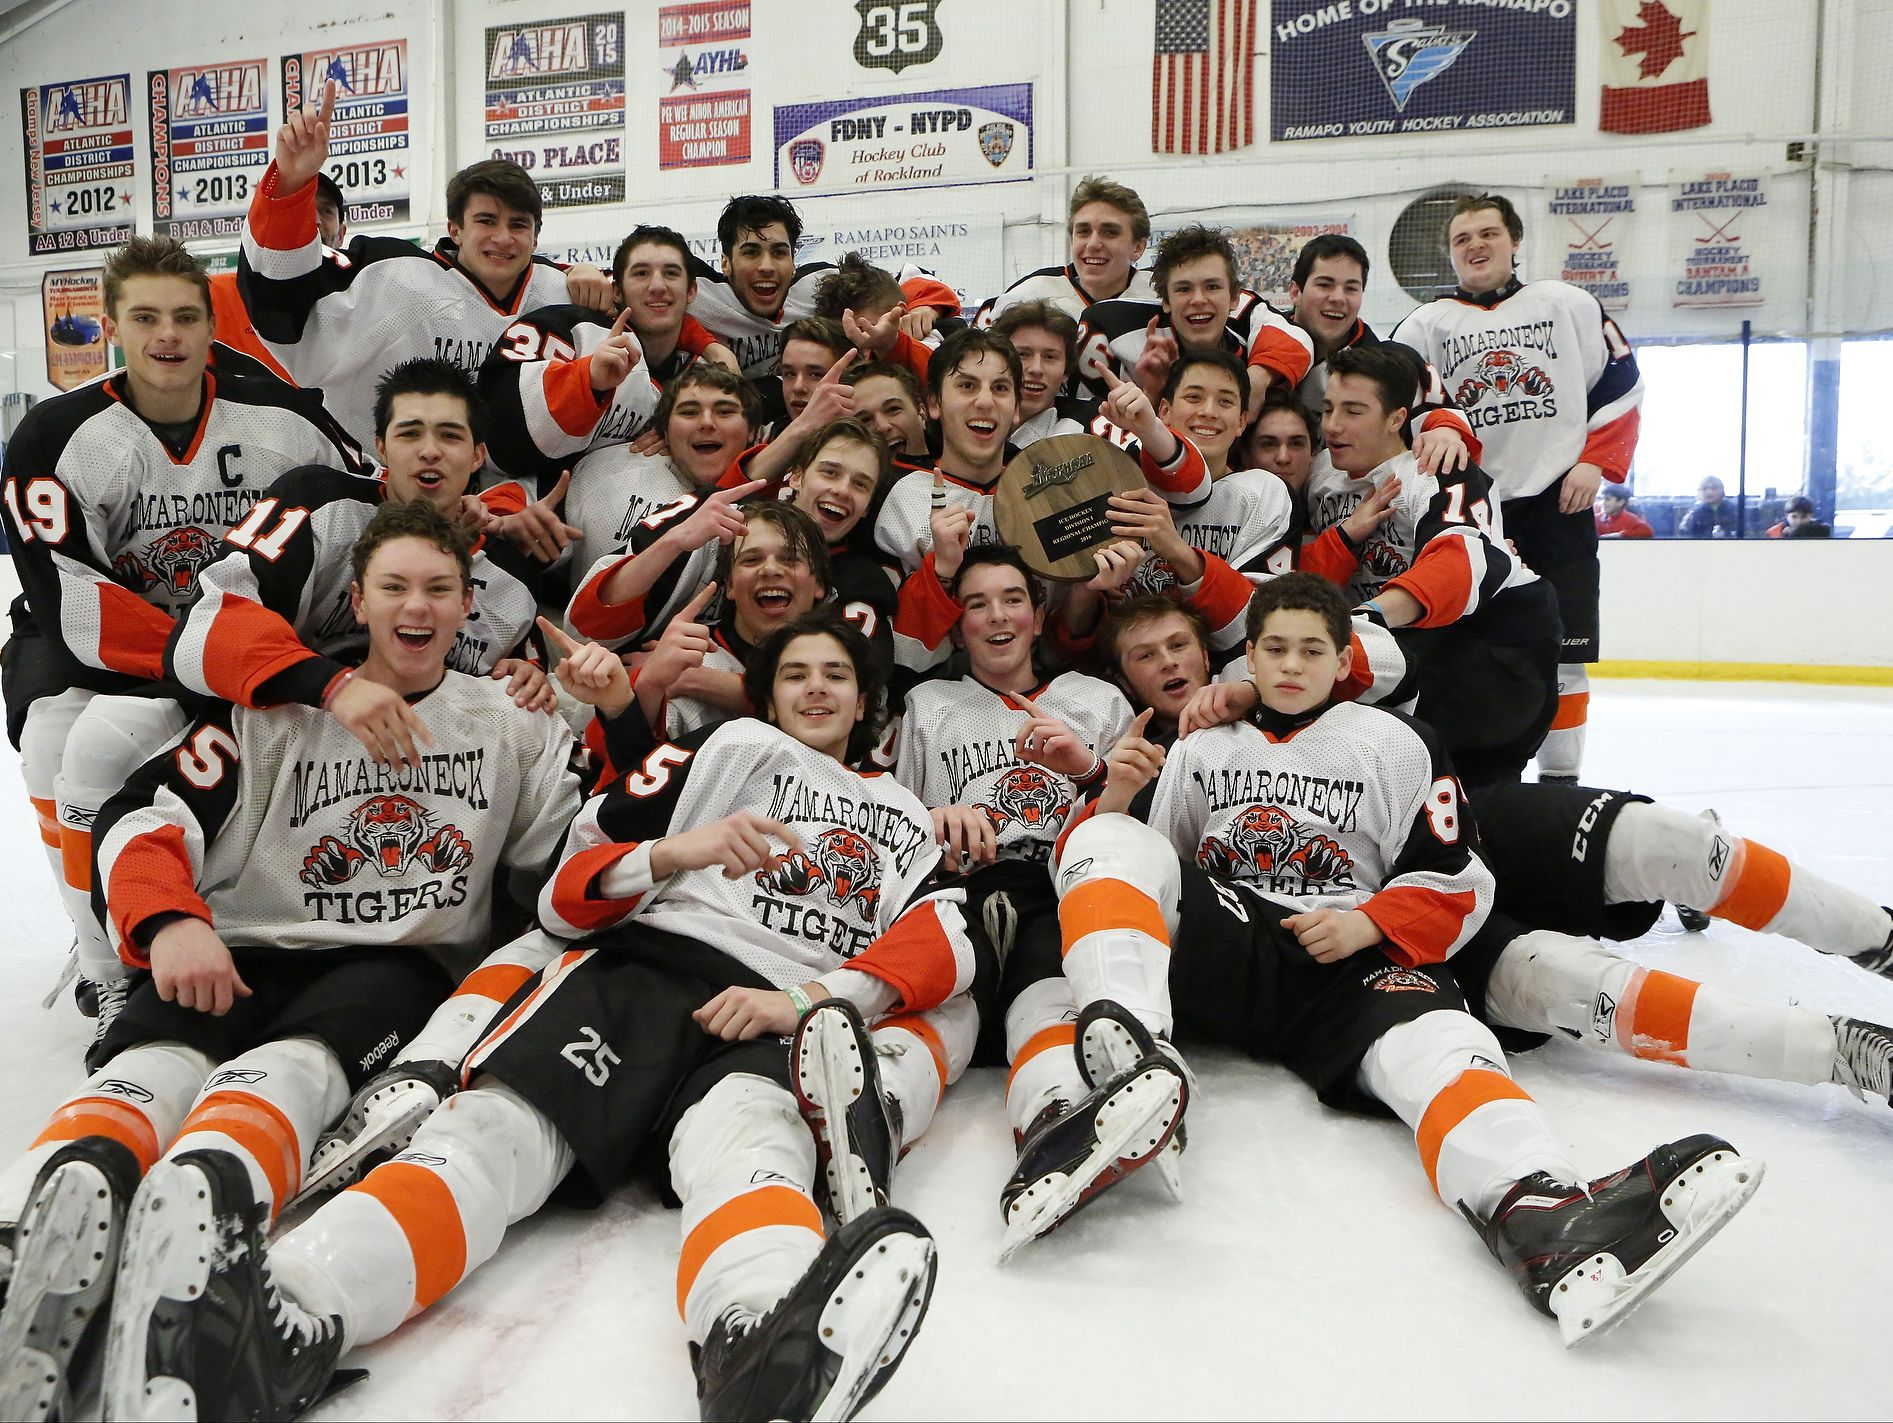 Mamaroneck is in League A with other perennial contenders Suffern, Pelham, Scarsdale, Rye and Clarkstown.